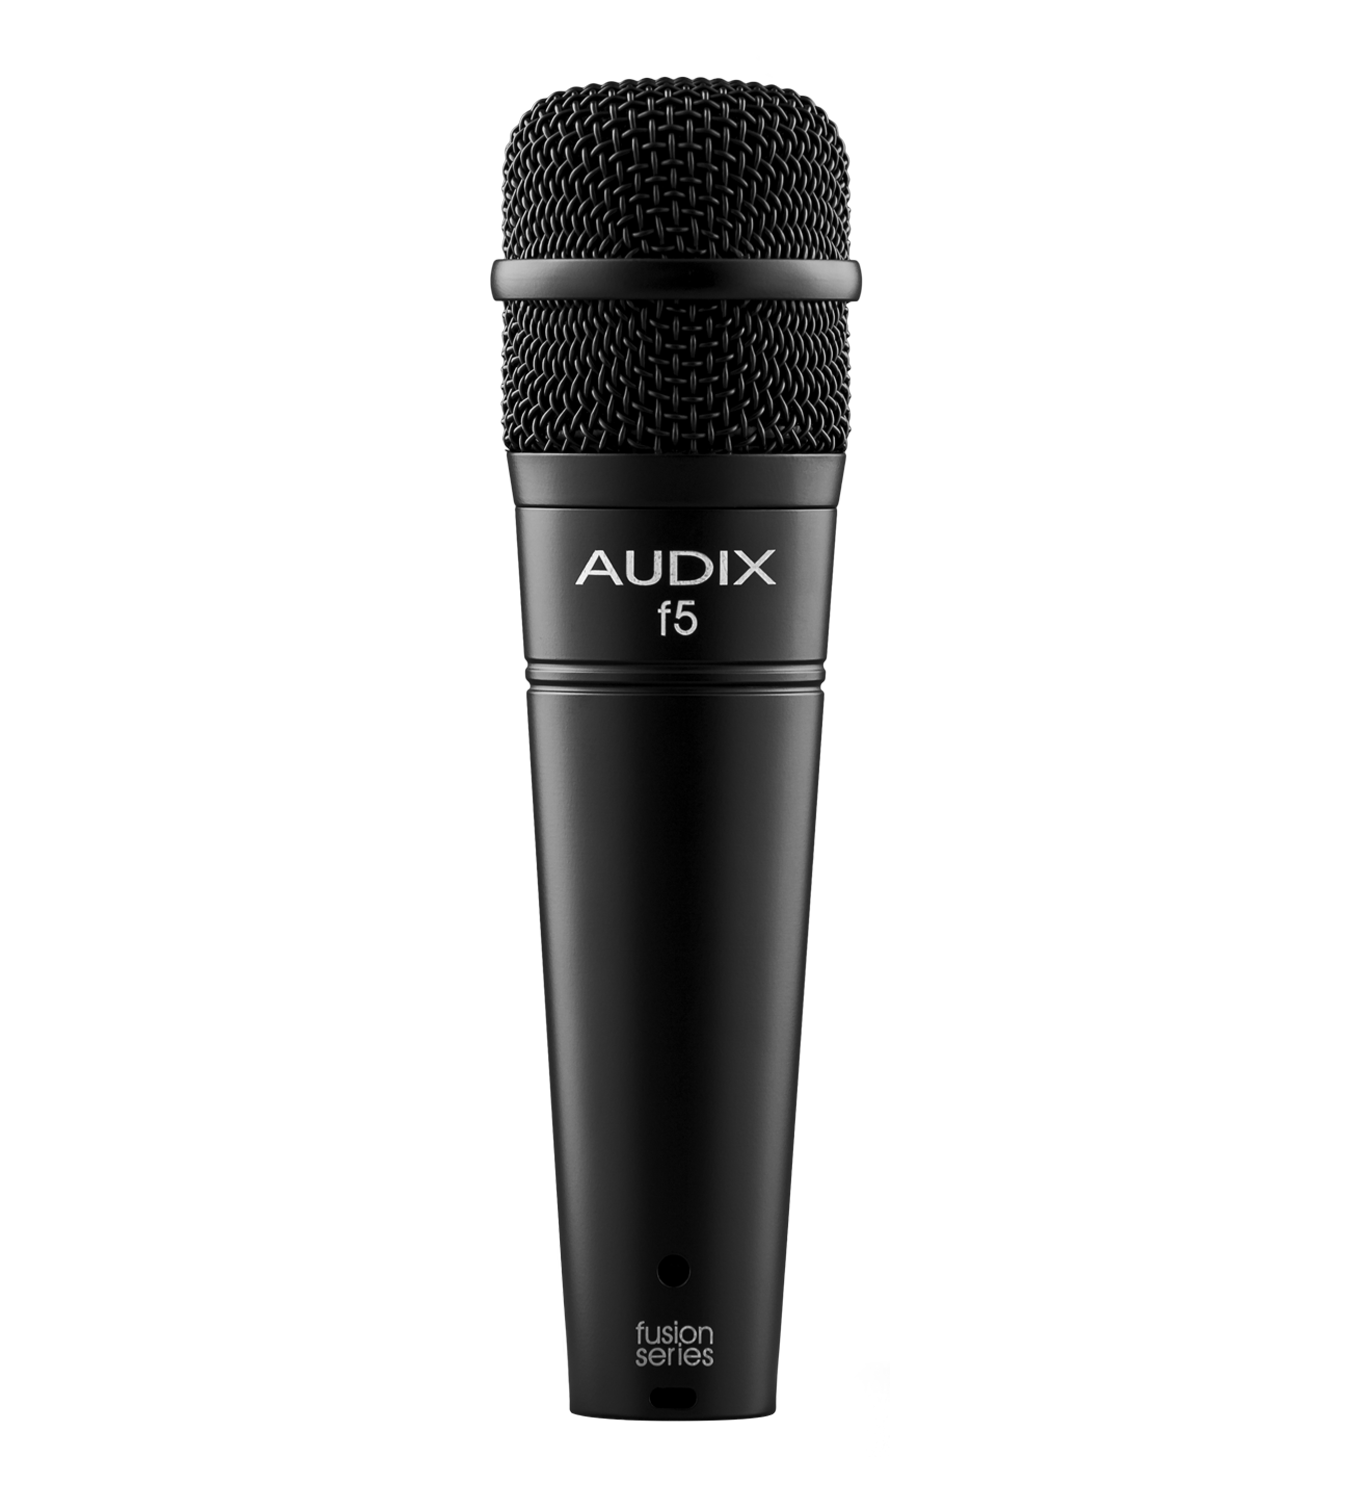 Audix f5 Instrument Mic